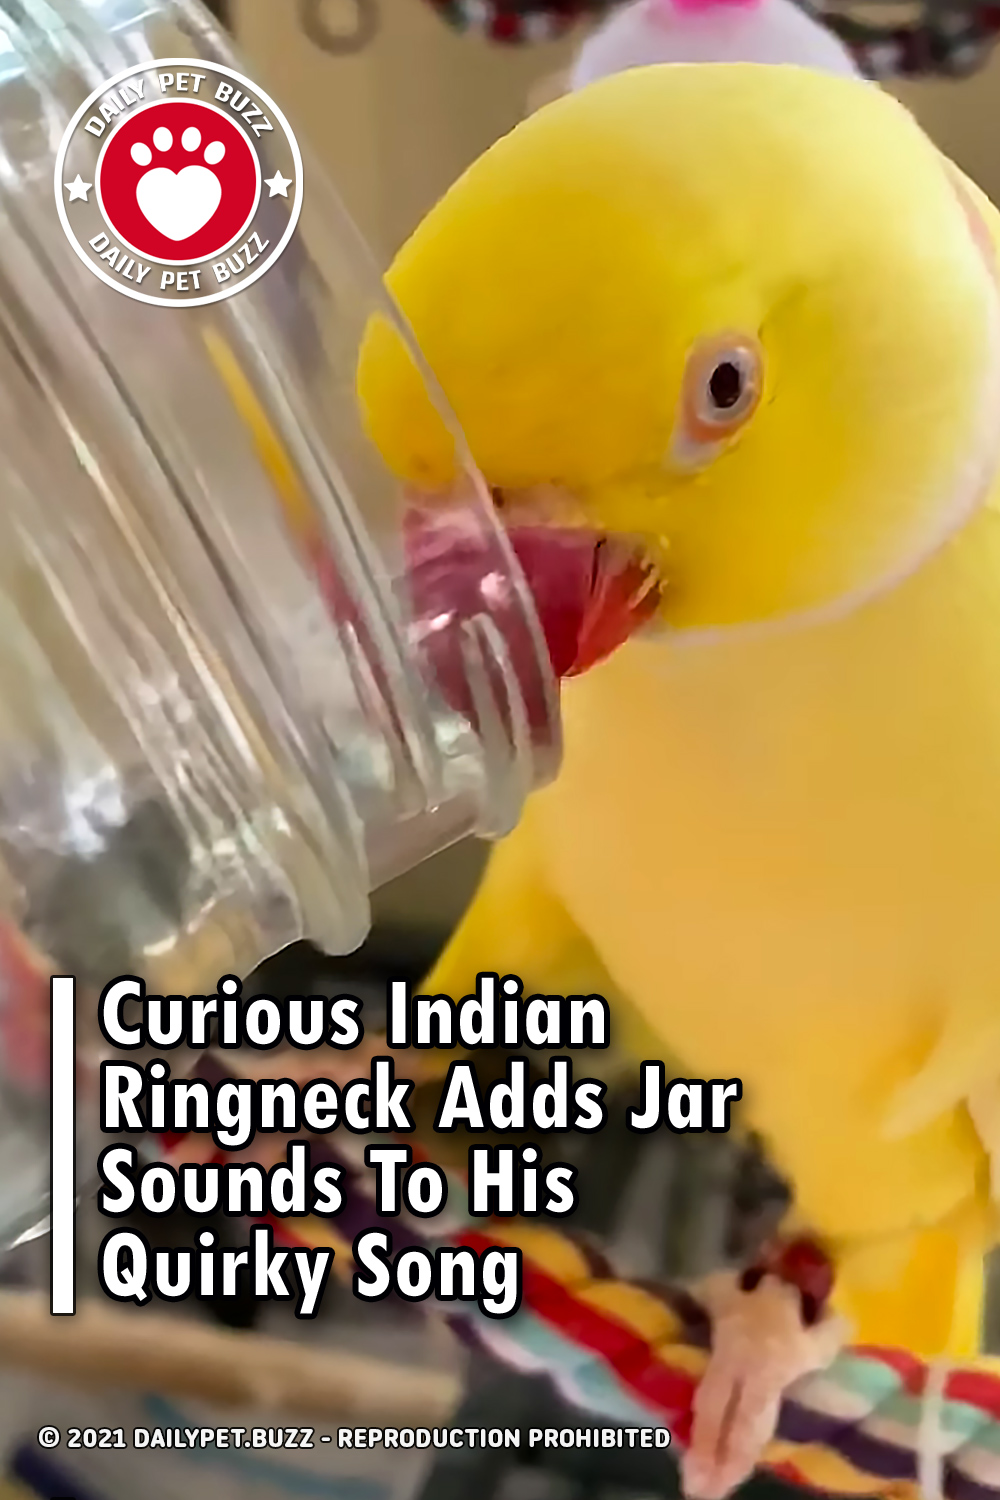 Curious Indian Ringneck Adds Jar Sounds To His Quirky Song